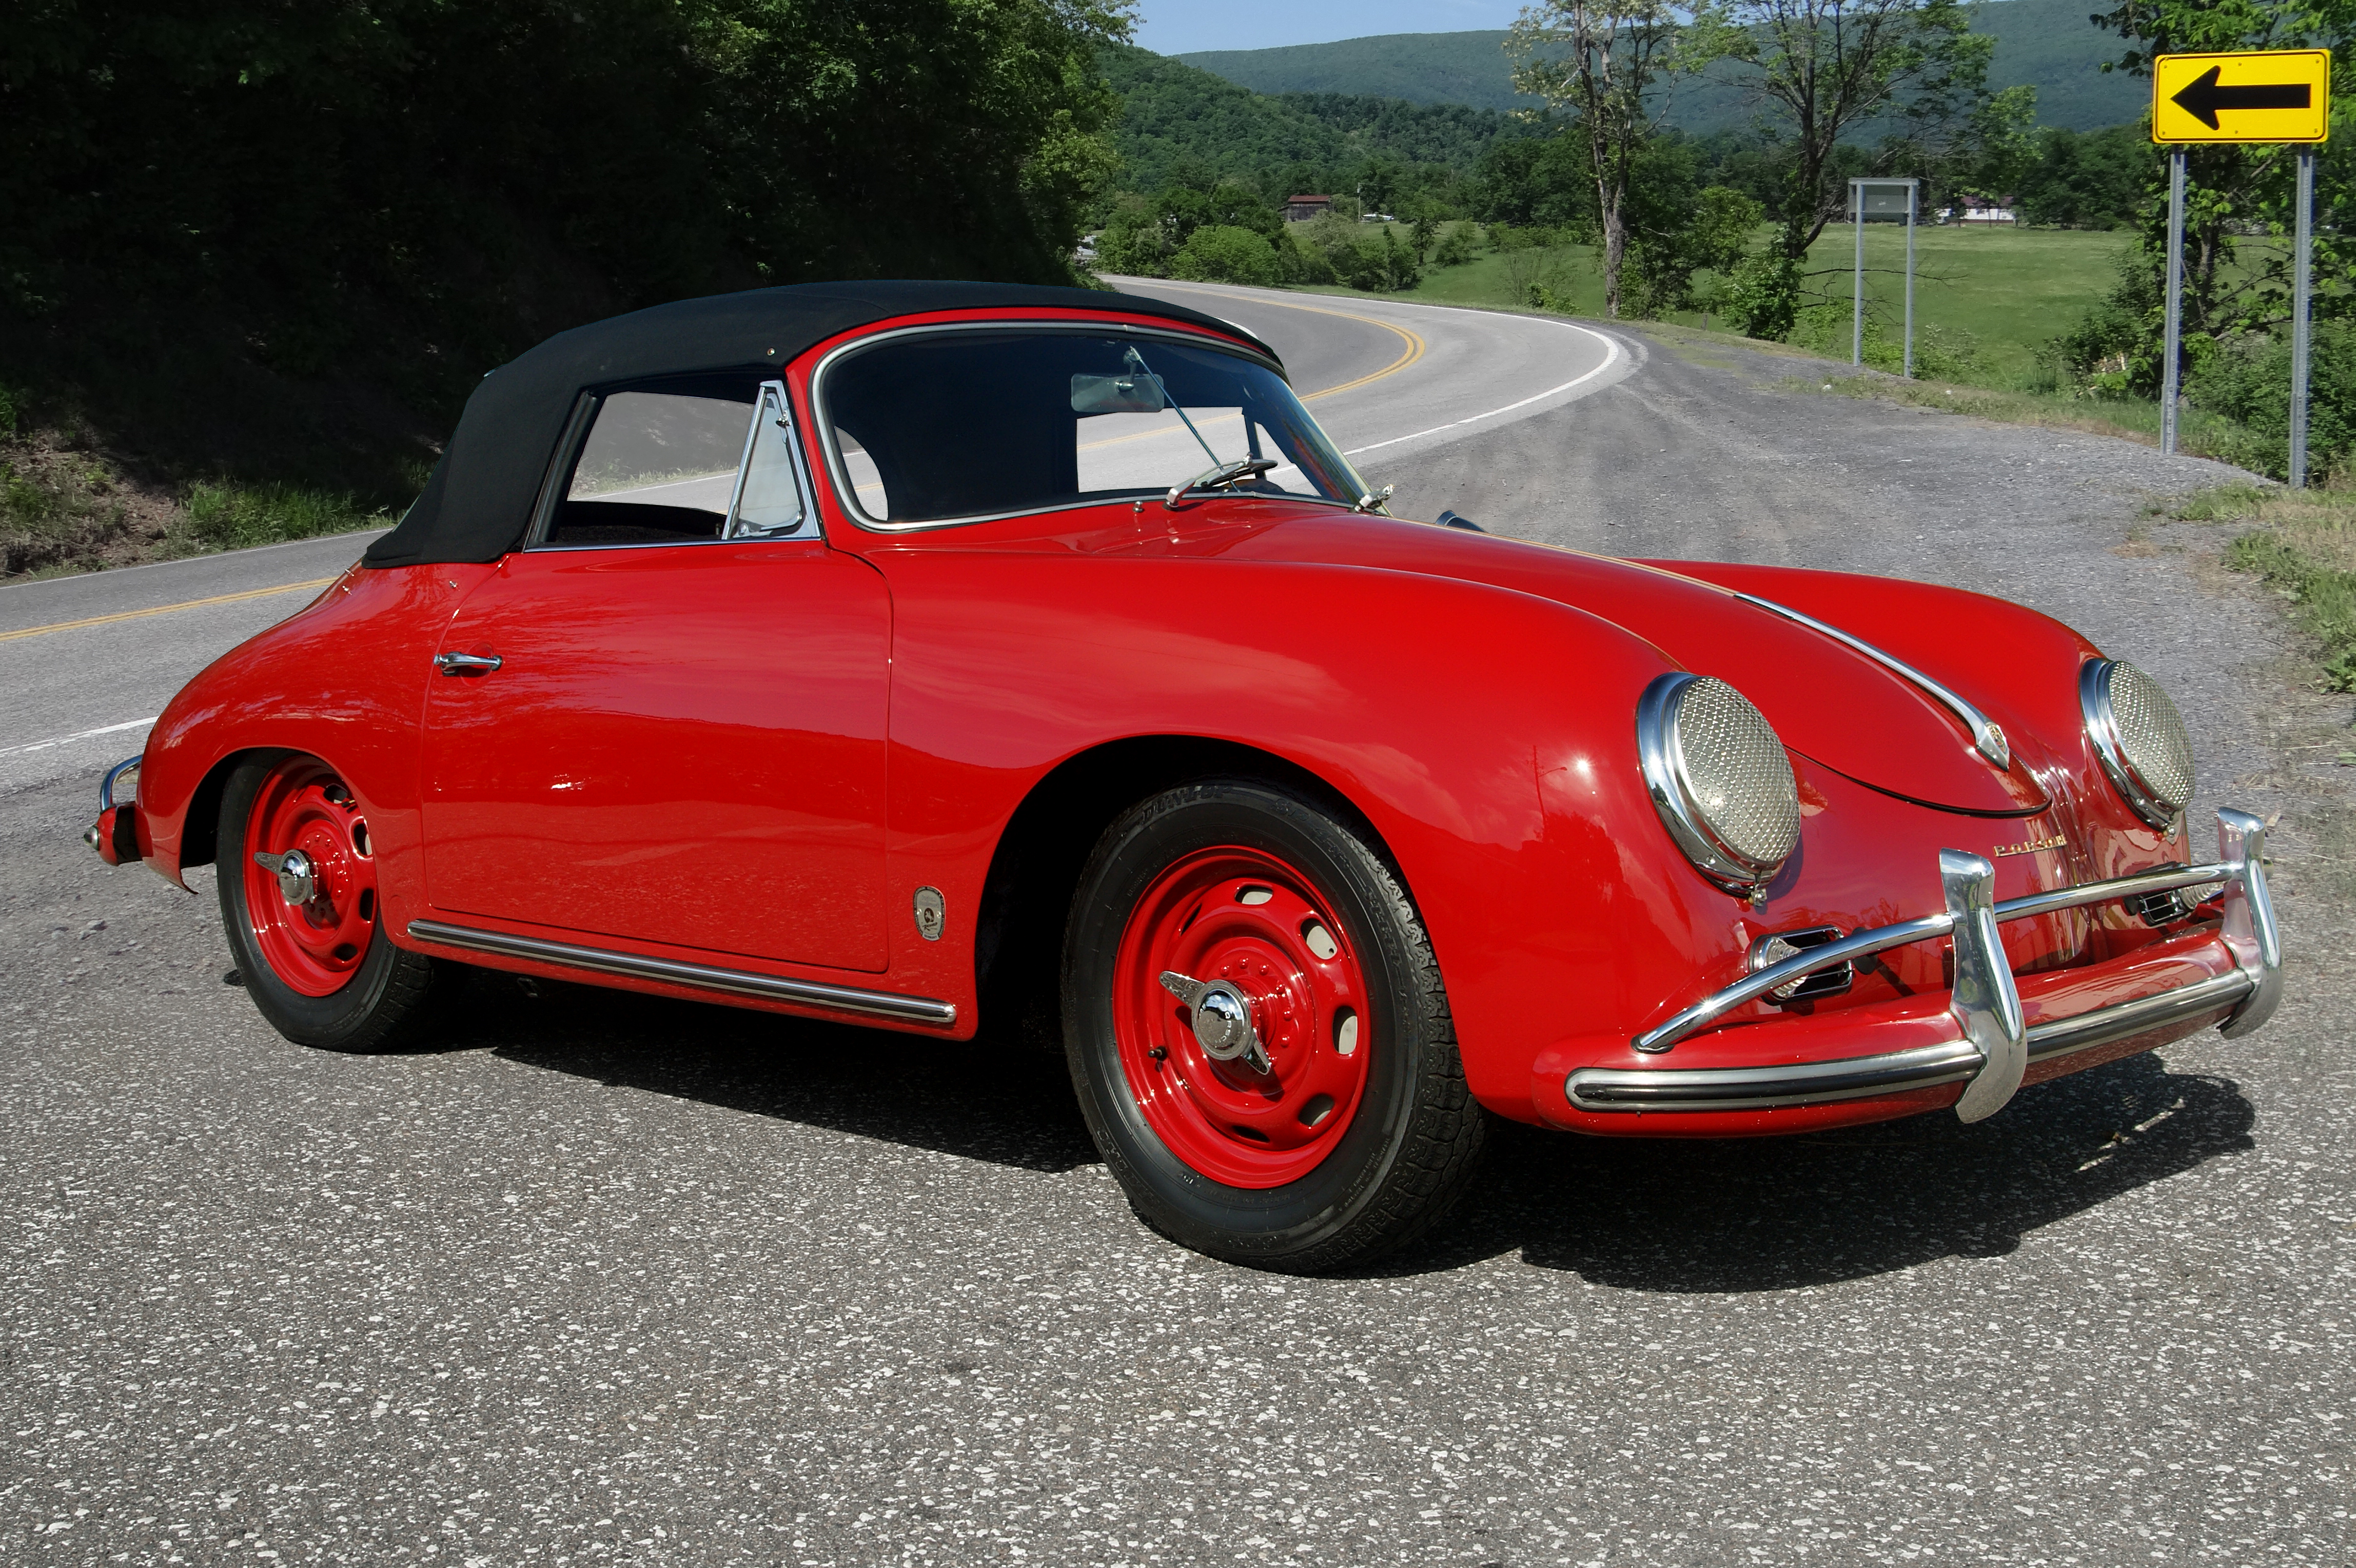 1958 Porsche 356A Cabriolet - Original Rudge Wheels - Hollywood Wheels Auction Shows